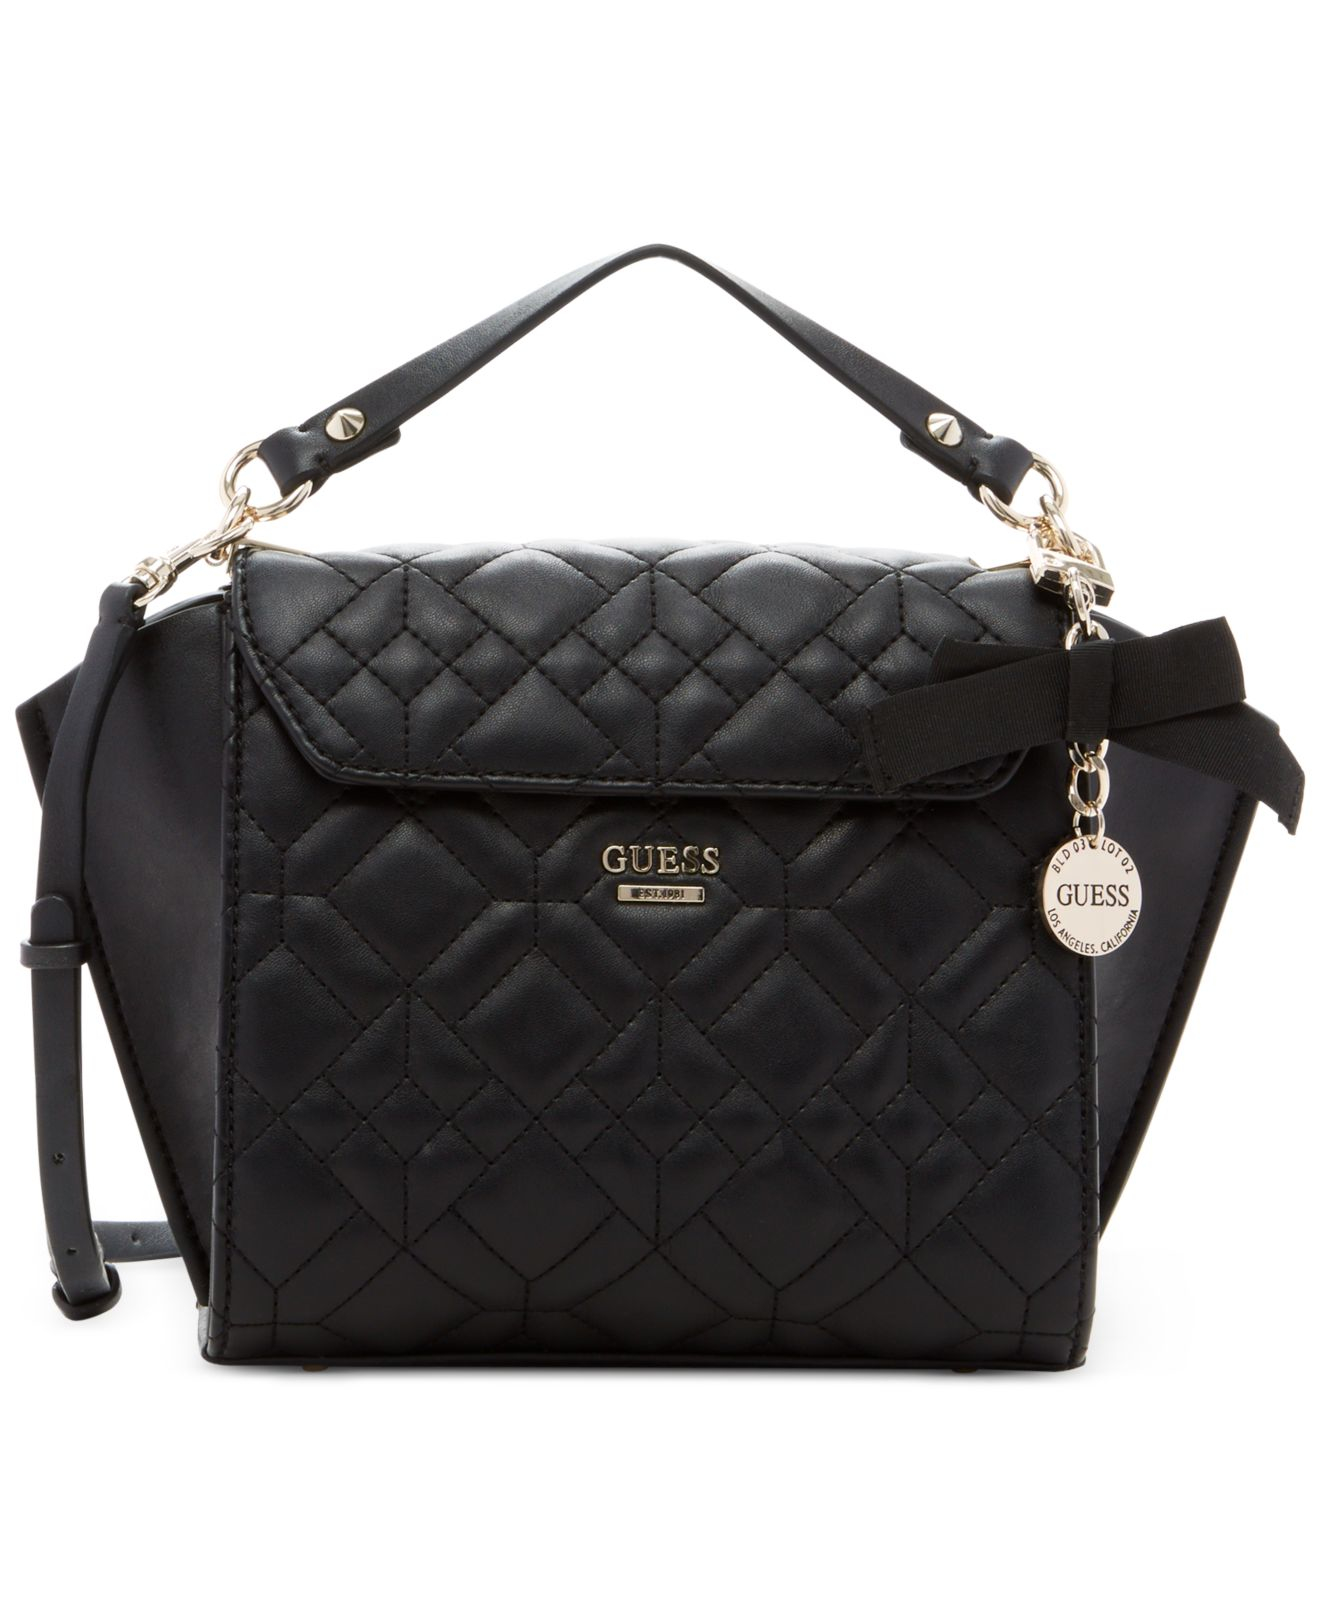 8d376bfd2ab5 Lyst - Guess Ines Top Handle Crossbody Bag in Black